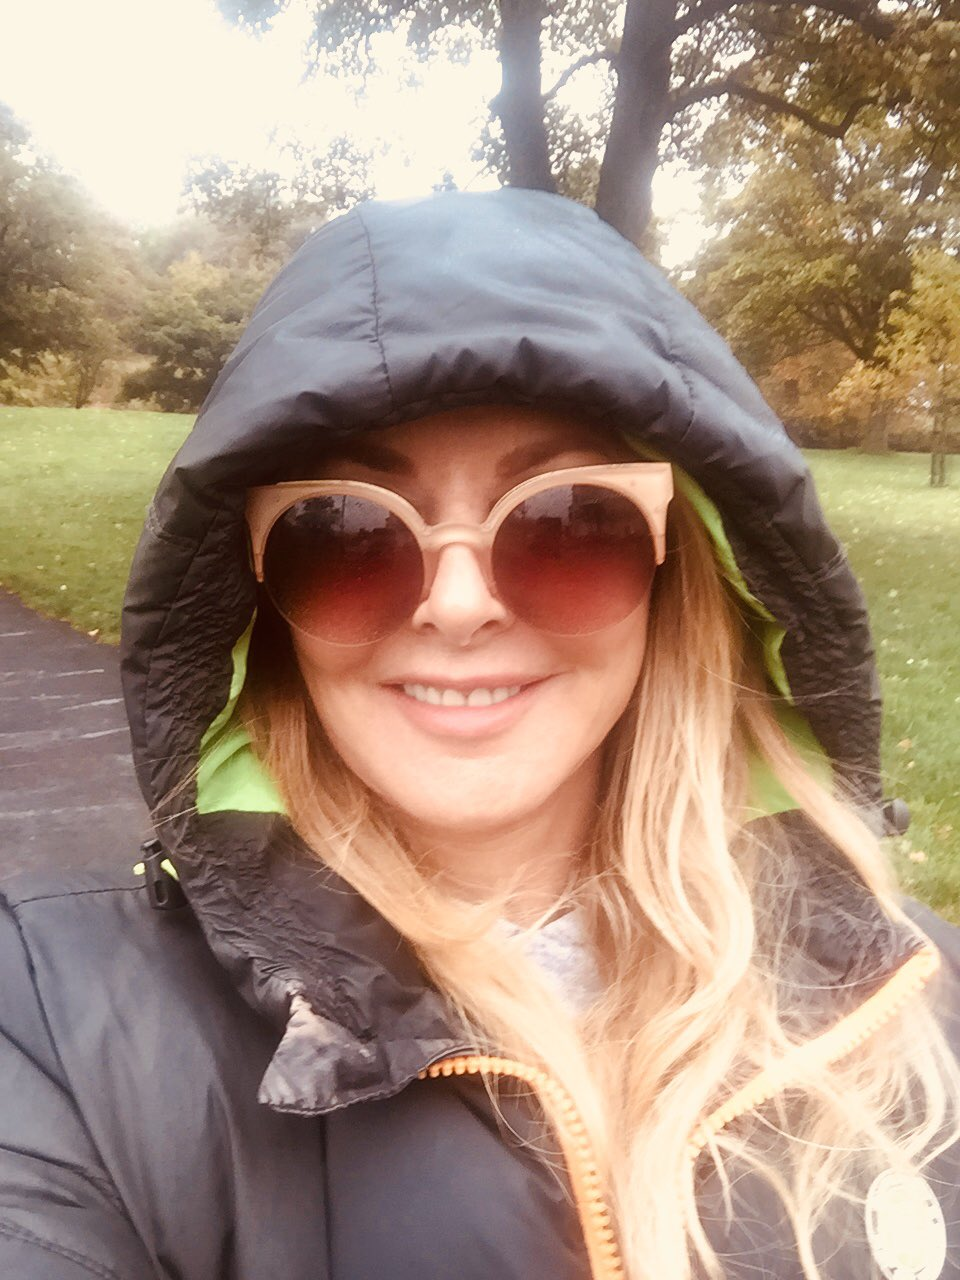 Tried tempting the sun out by wearing shades #BrizzleDrizzle x https://t.co/jH2AqBl3yY